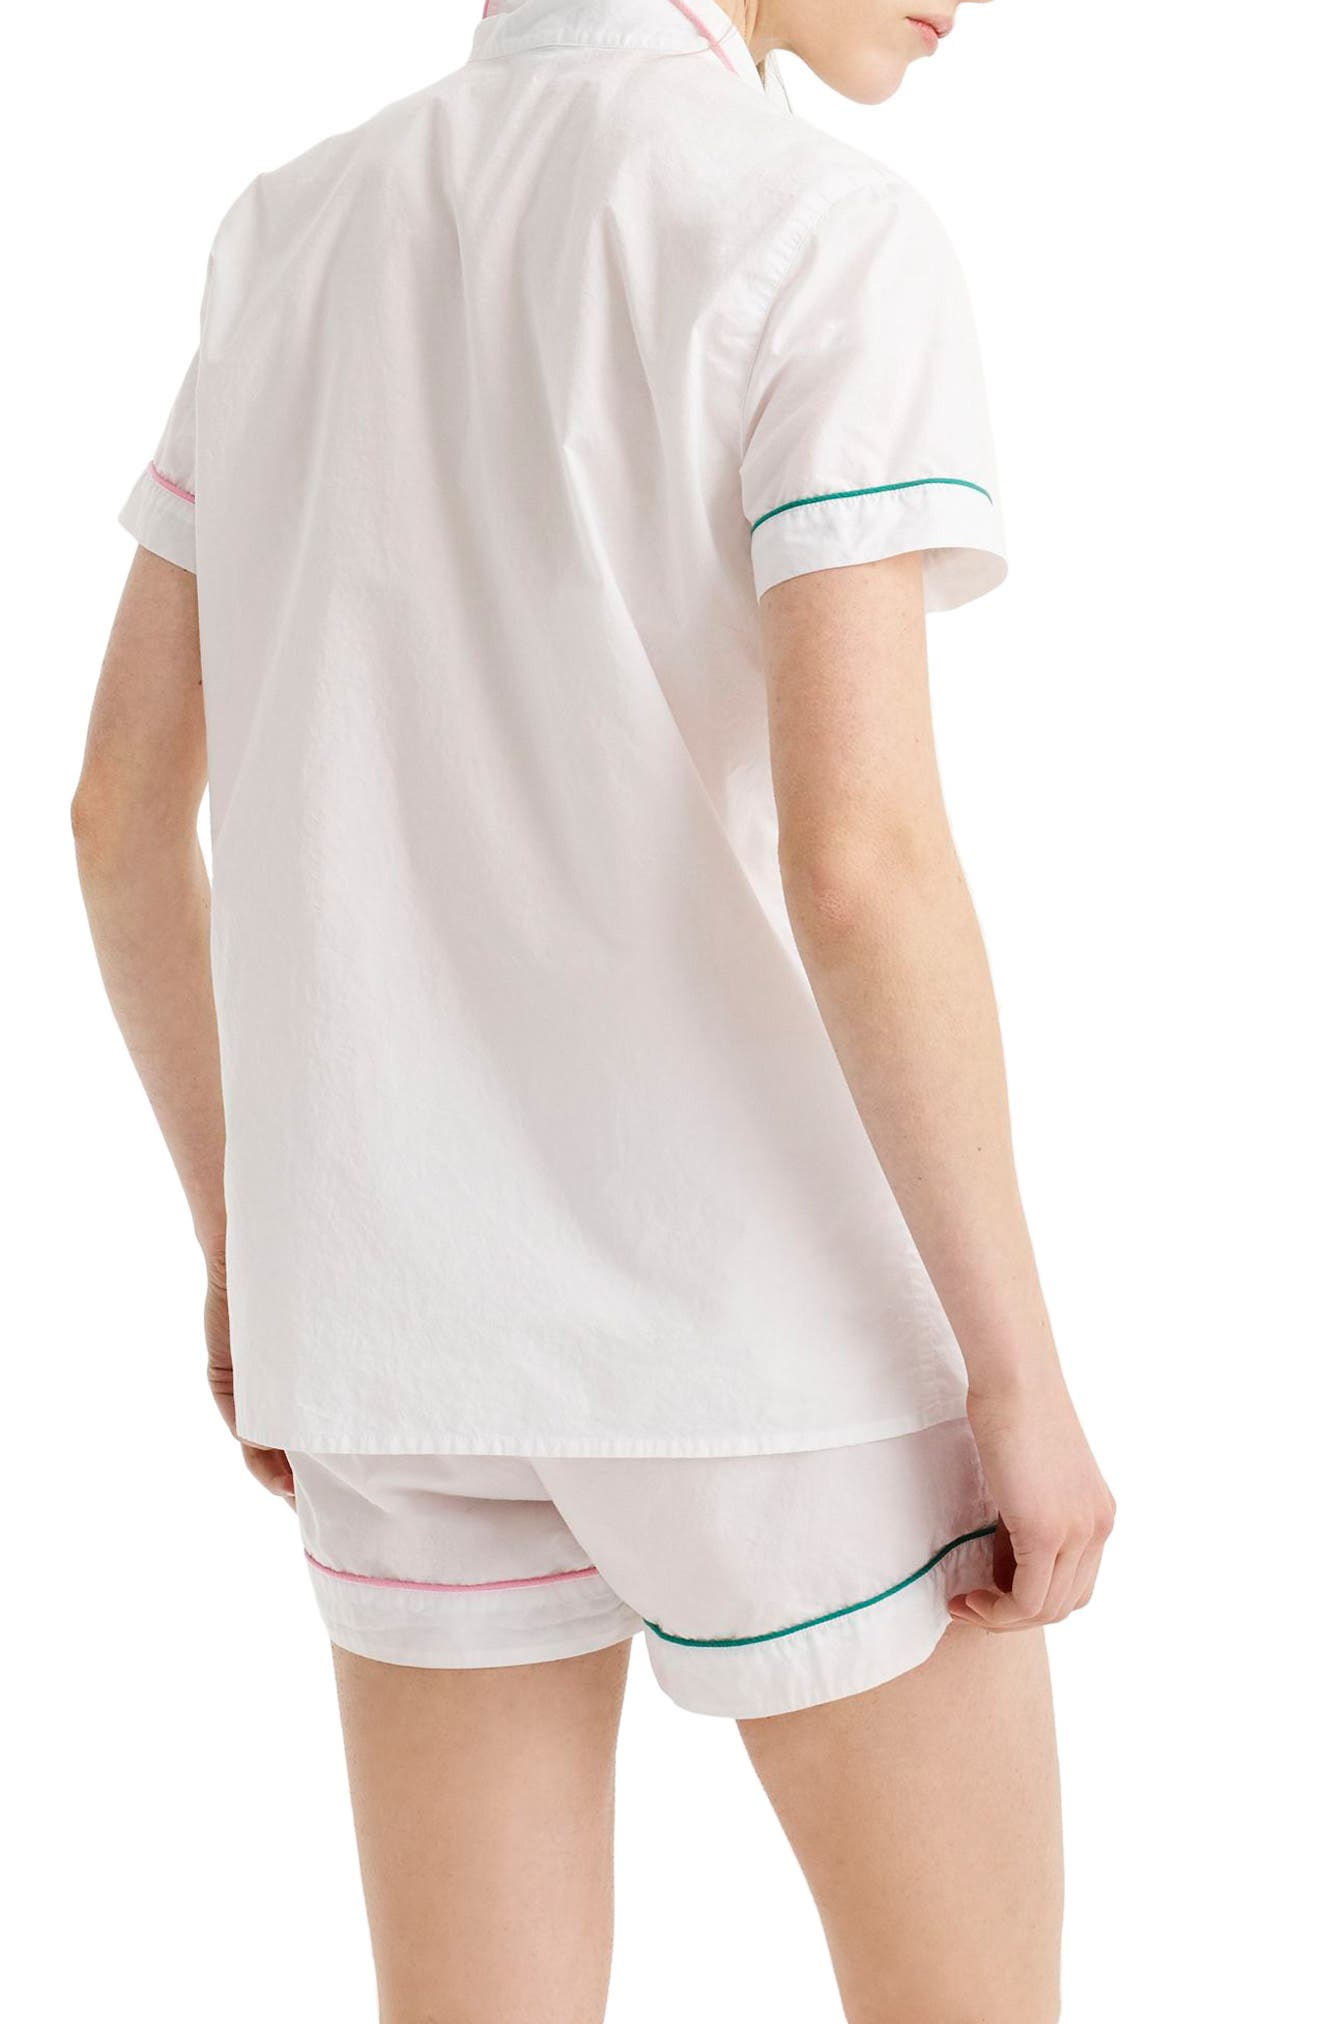 Tipped Short Cotton Pajamas,                             Alternate thumbnail 2, color,                             White Pink Green